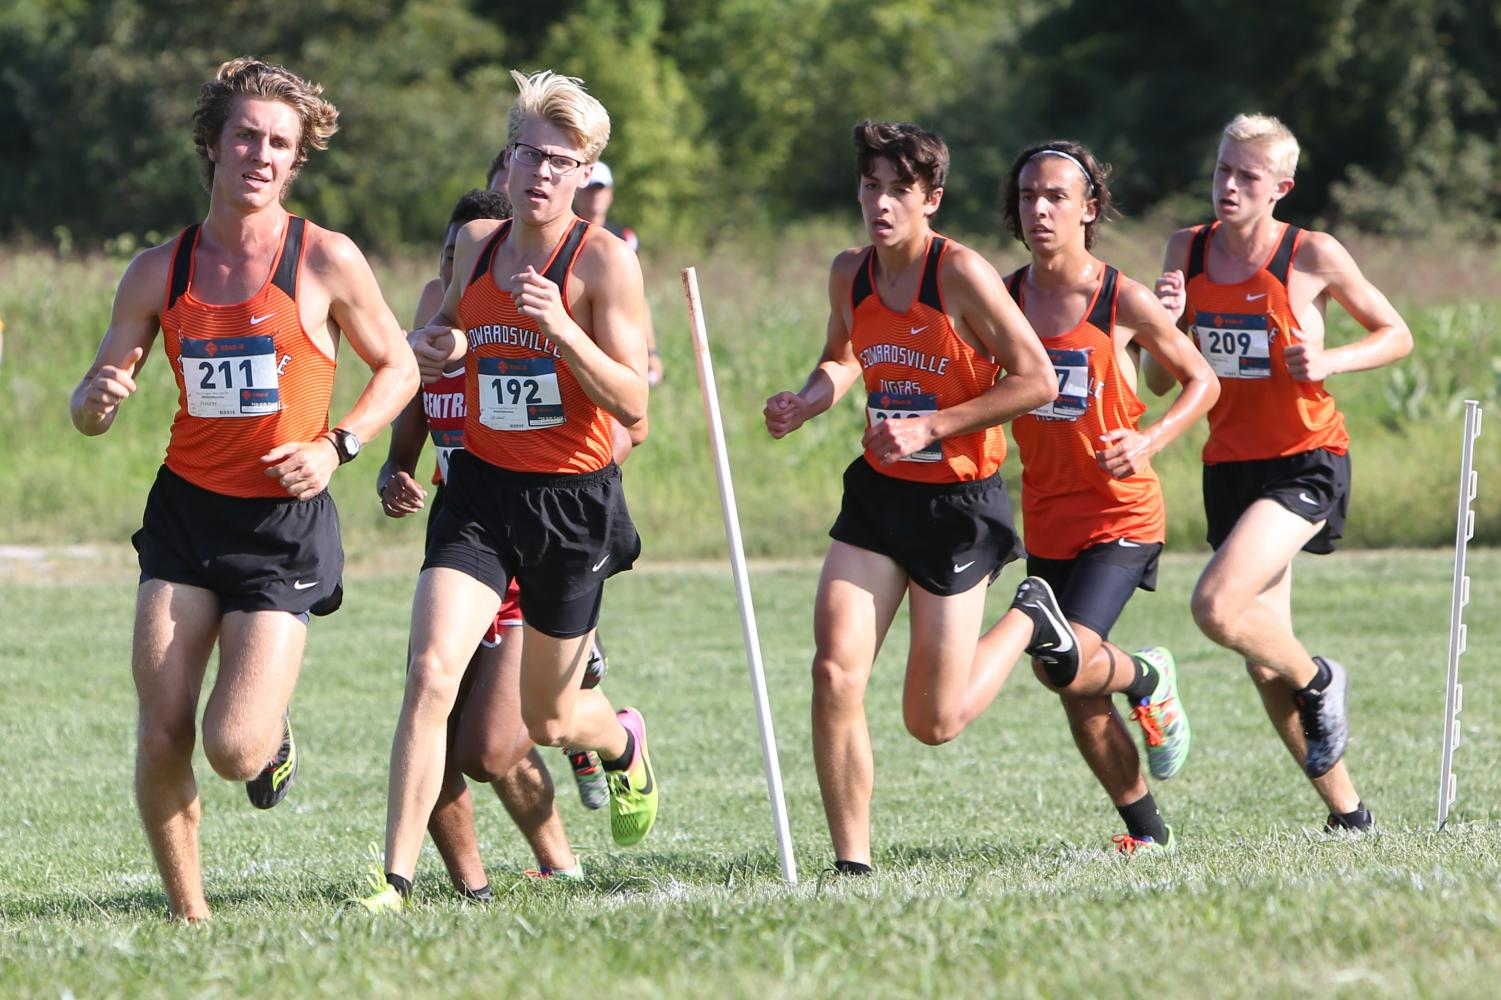 Senior Roland Prenzler, juniors Henry Gruben, Alexander Valdez, Jack Pifer and freshman Wyatt Erber lead the race around a corner at the SIUE cross-country course.